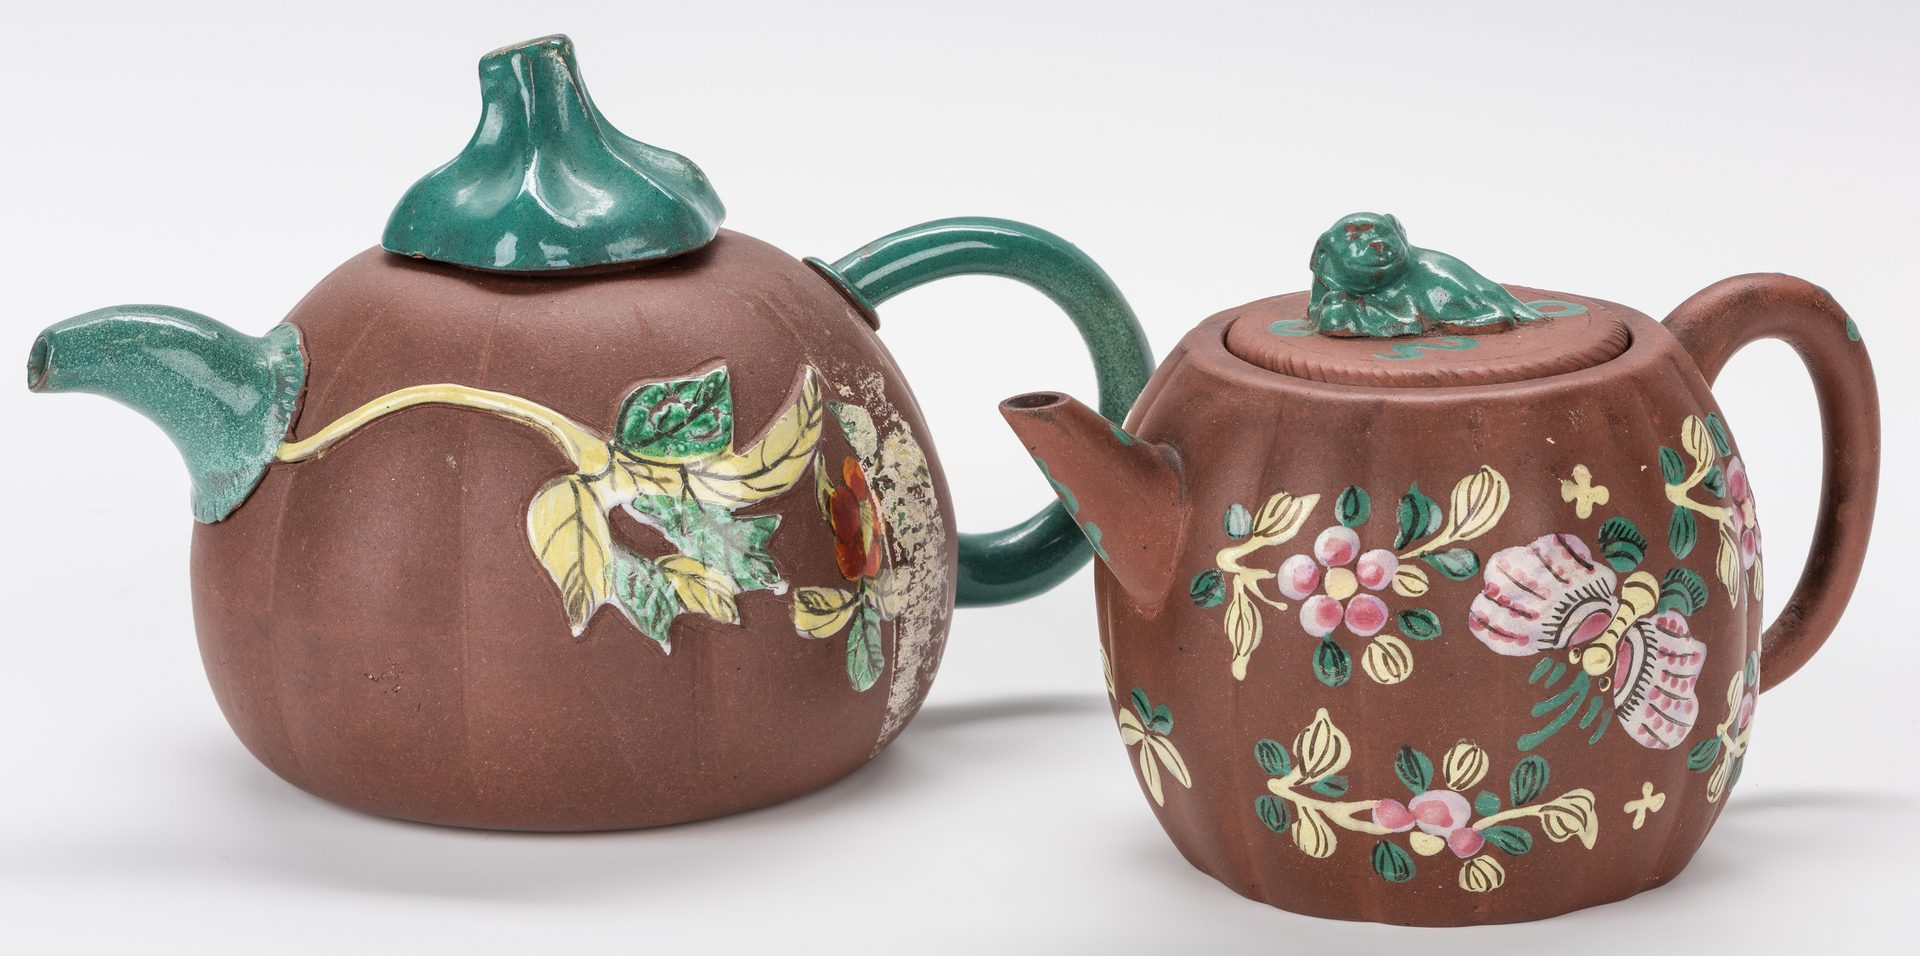 Lot 38: 5 Chinese Yixing Teapots w/ Enameled Decoration